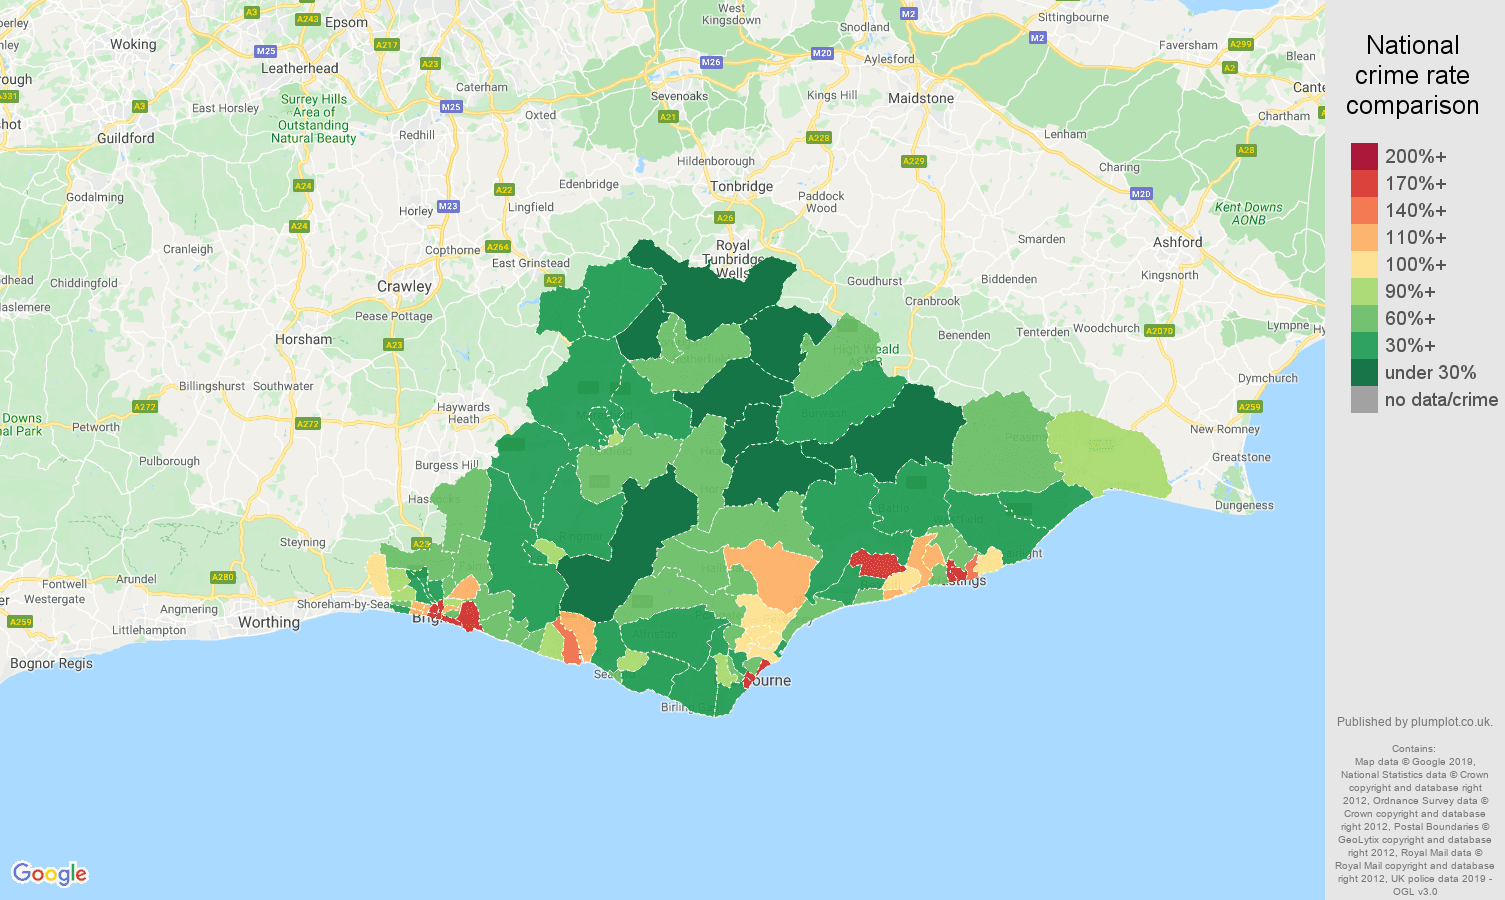 East Sussex public order crime rate comparison map